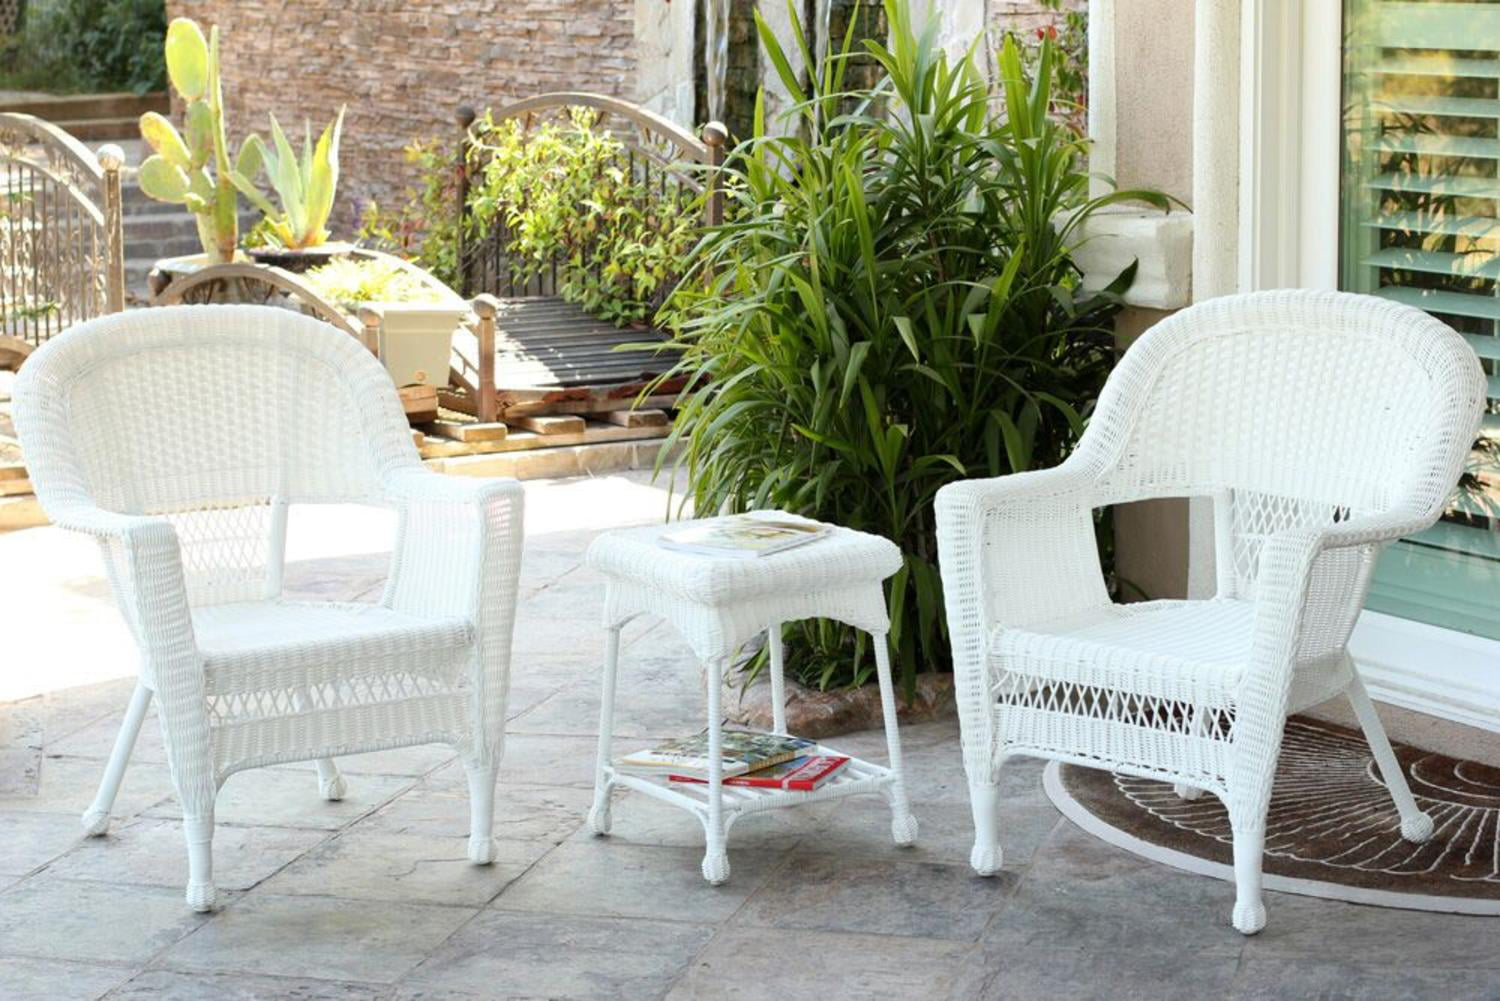 3 Piece White Resin Wicker Patio Chairs And End Table Furniture Set